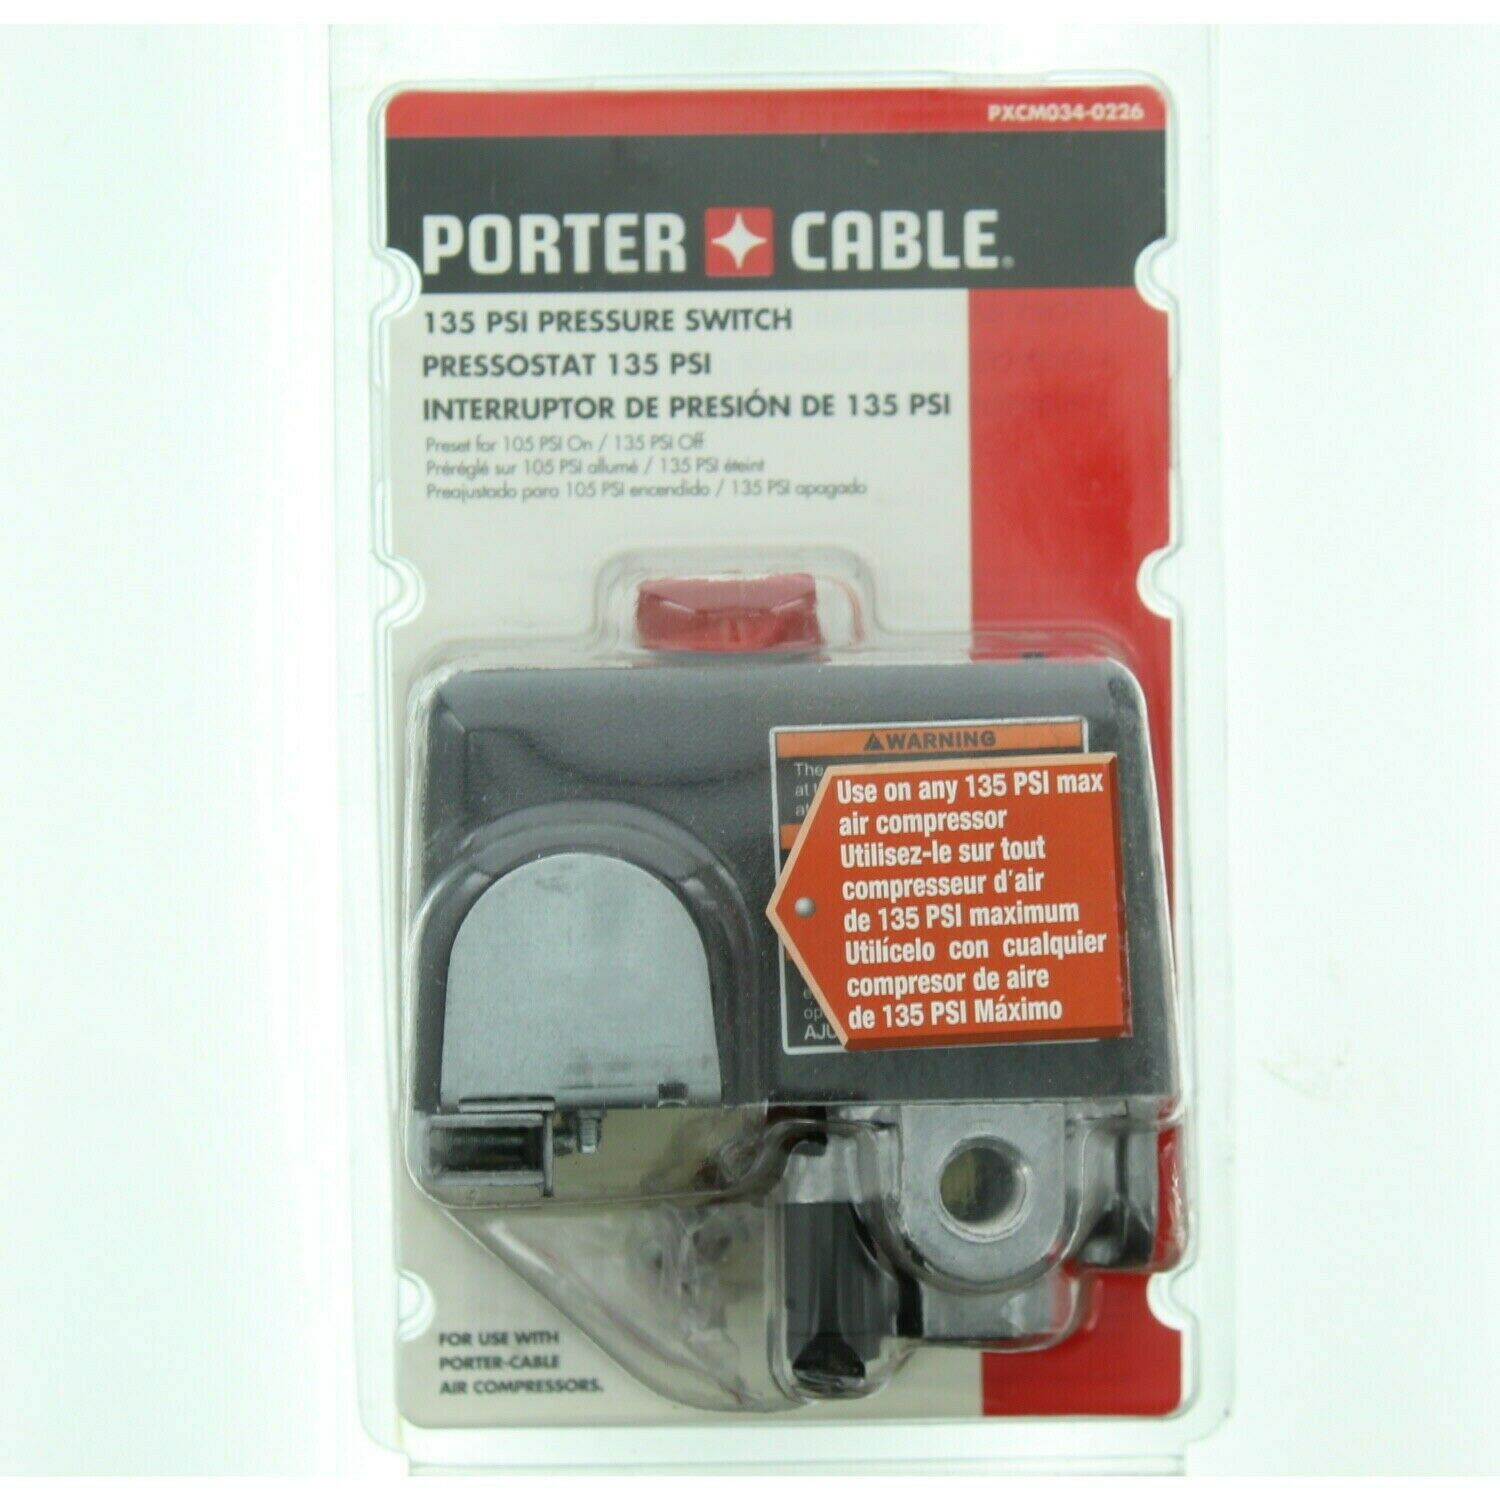 Porter Cable PXCM034-0226 105-135 PSI Air Compressor Pressur